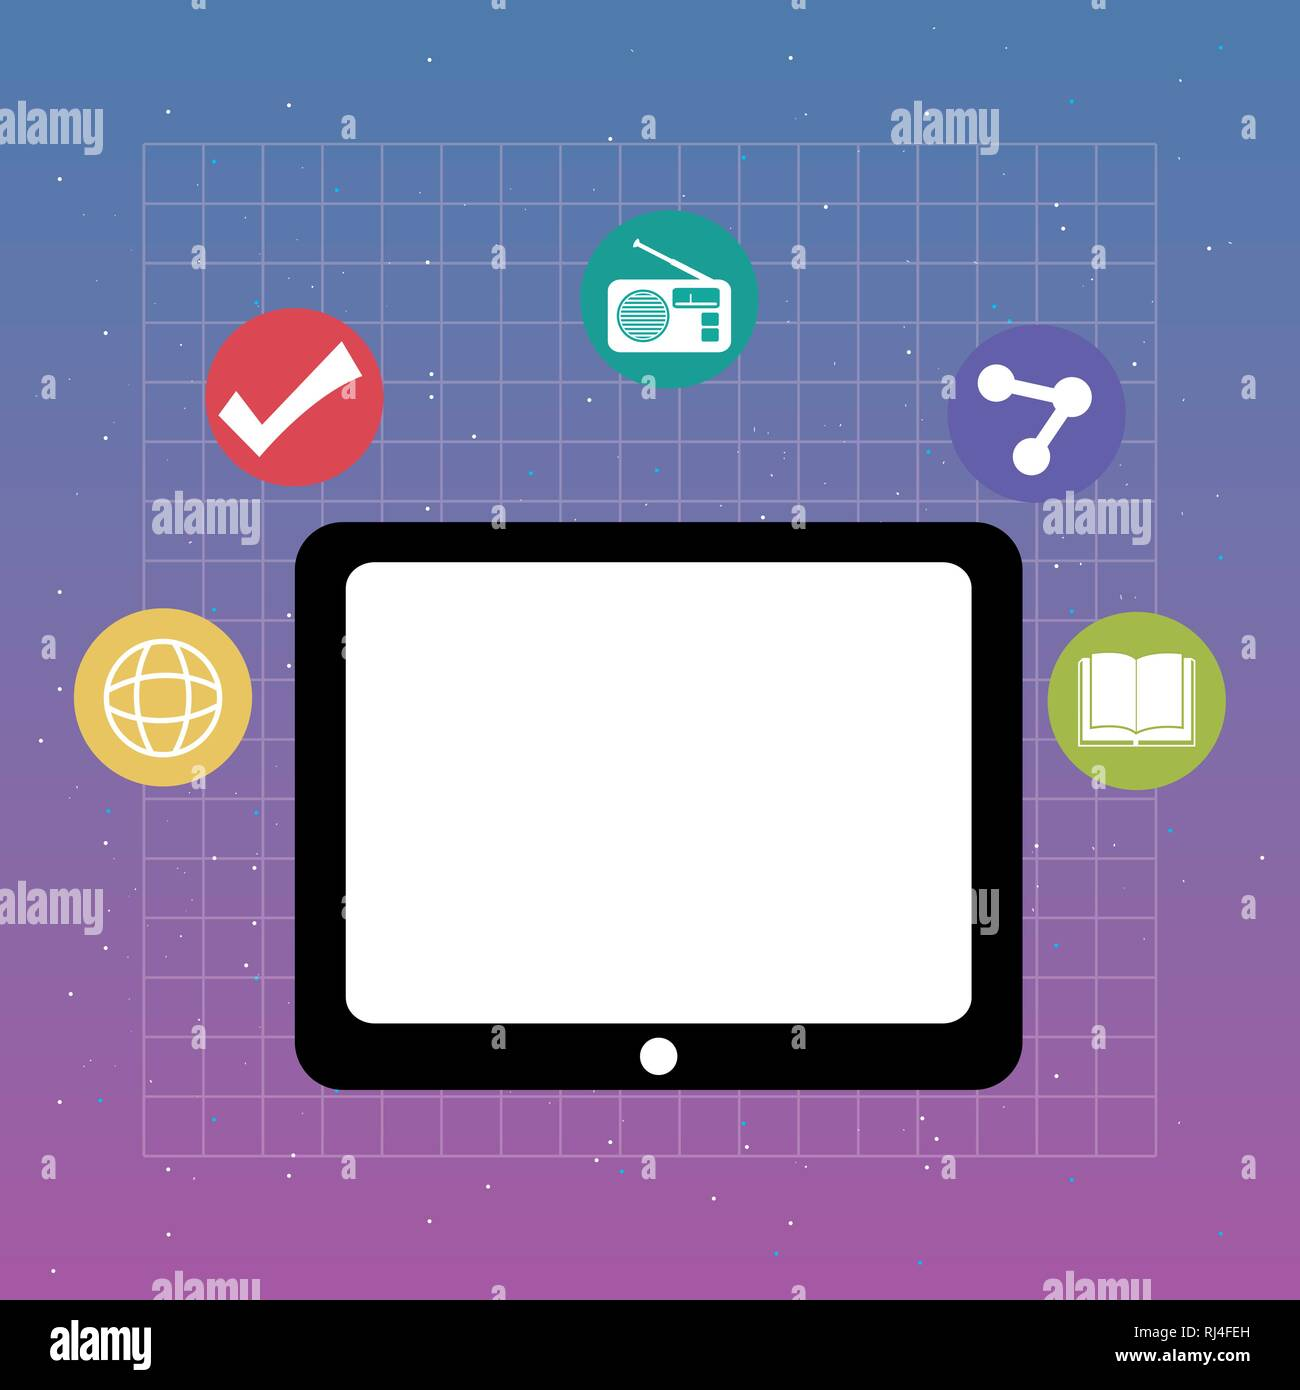 tablet with applications menu vector illustration design - Stock Image